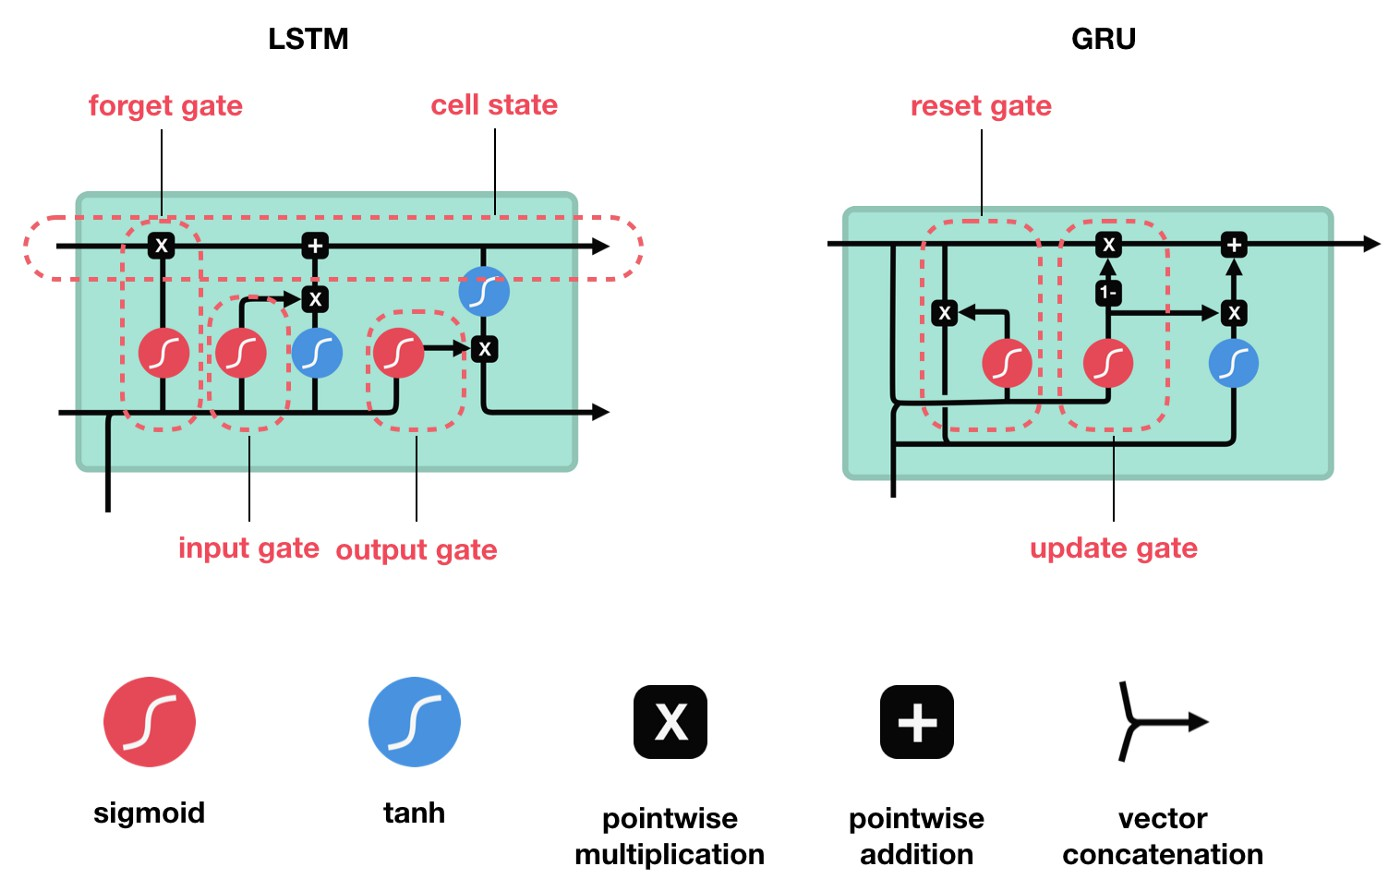 Basic architectures of GRU and LSTM cells